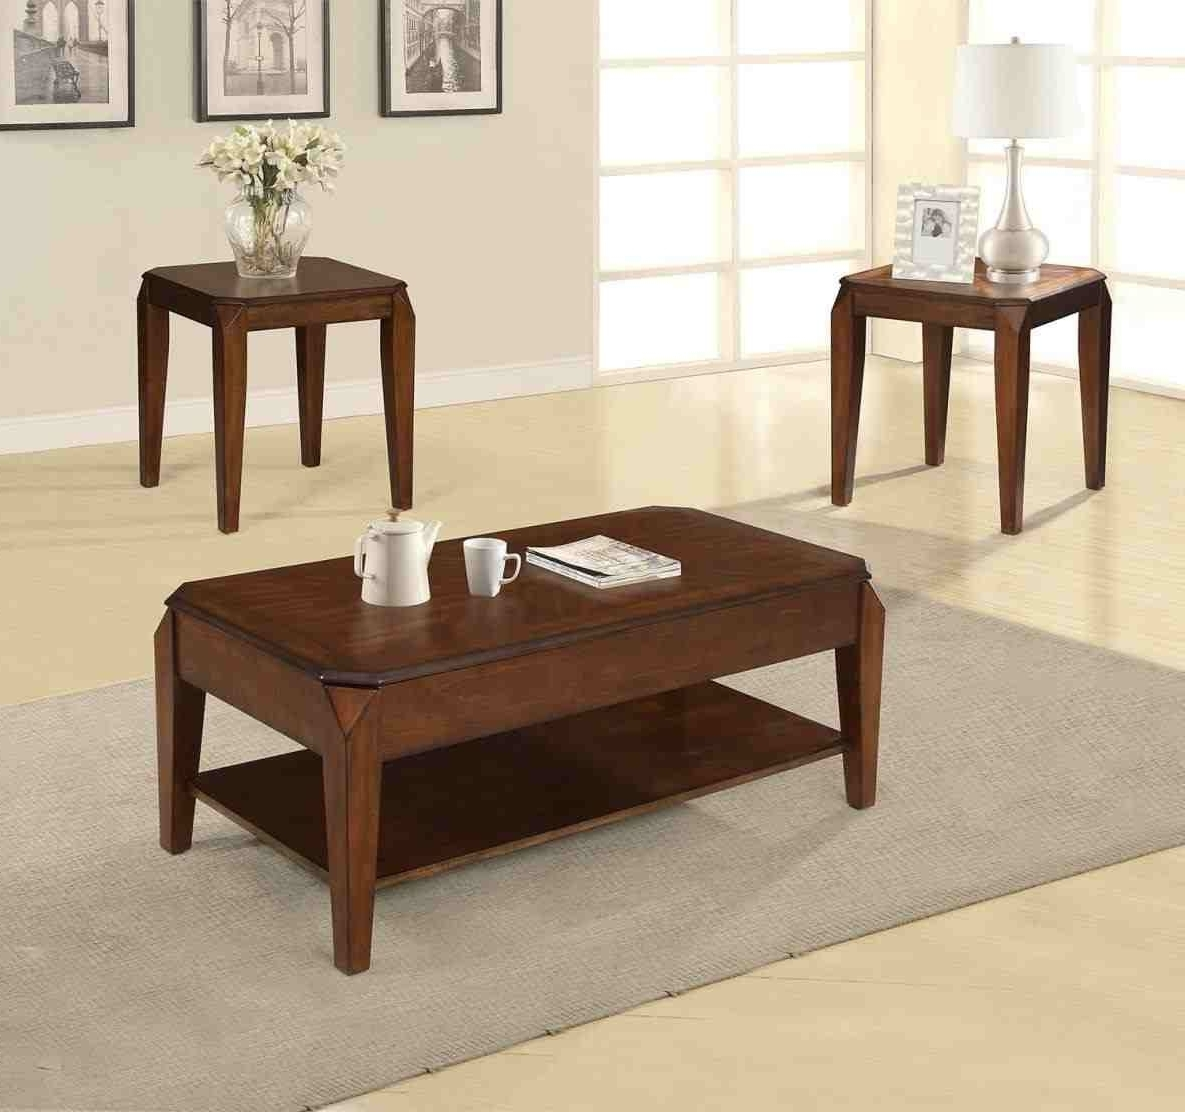 Widely Used Swell Round Coffee Tables In Duntara Coffee Table With Lift Top – Swell Round Coffee Table (View 20 of 20)